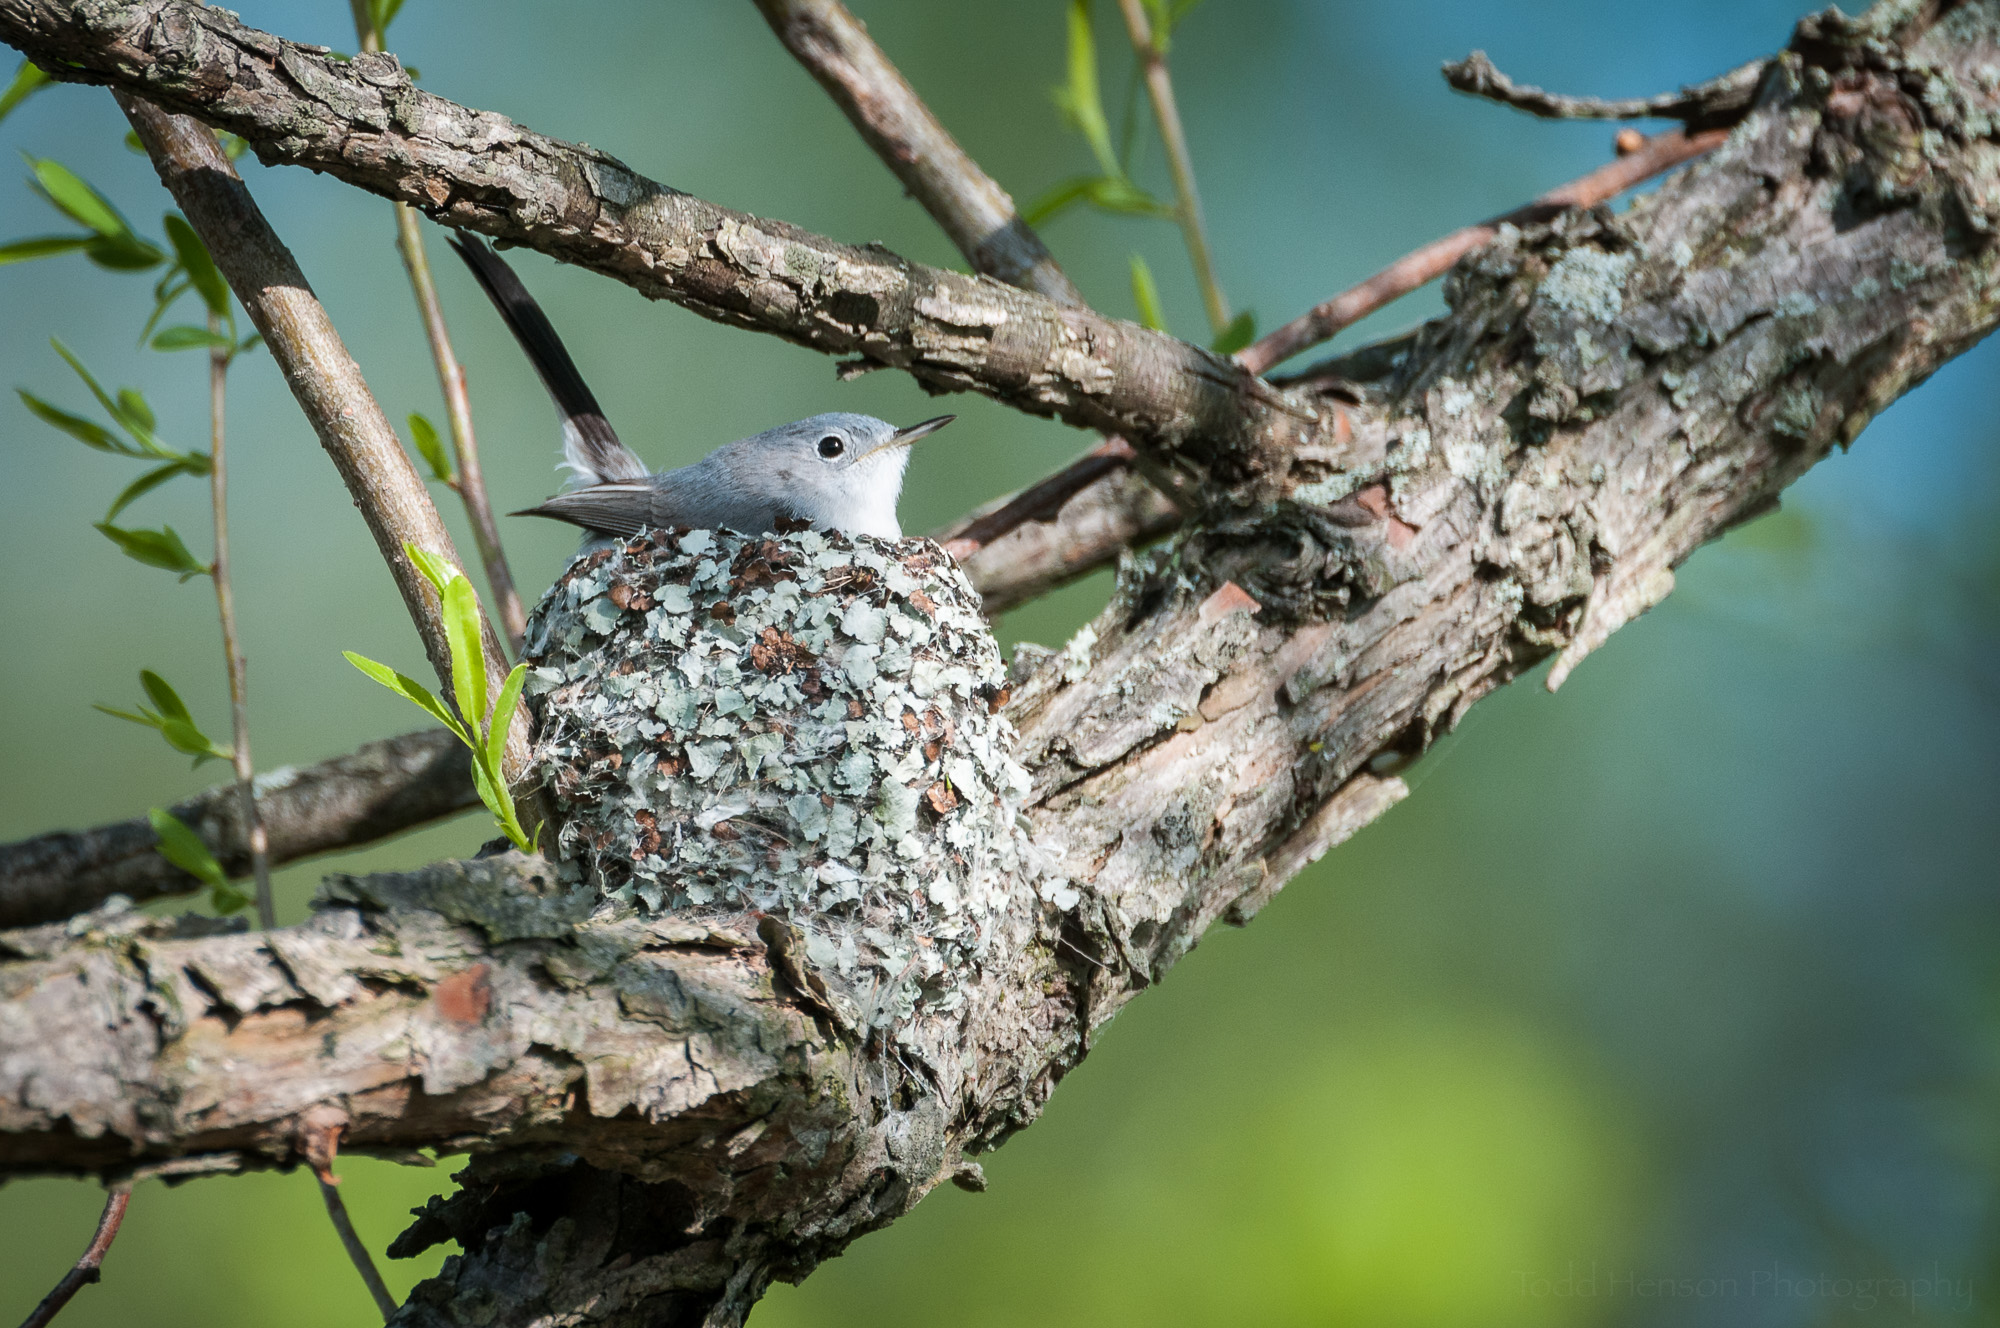 Female Blue-Gray Gnatcatcher sitting in her nest, beautifully lit by early morning sunlight